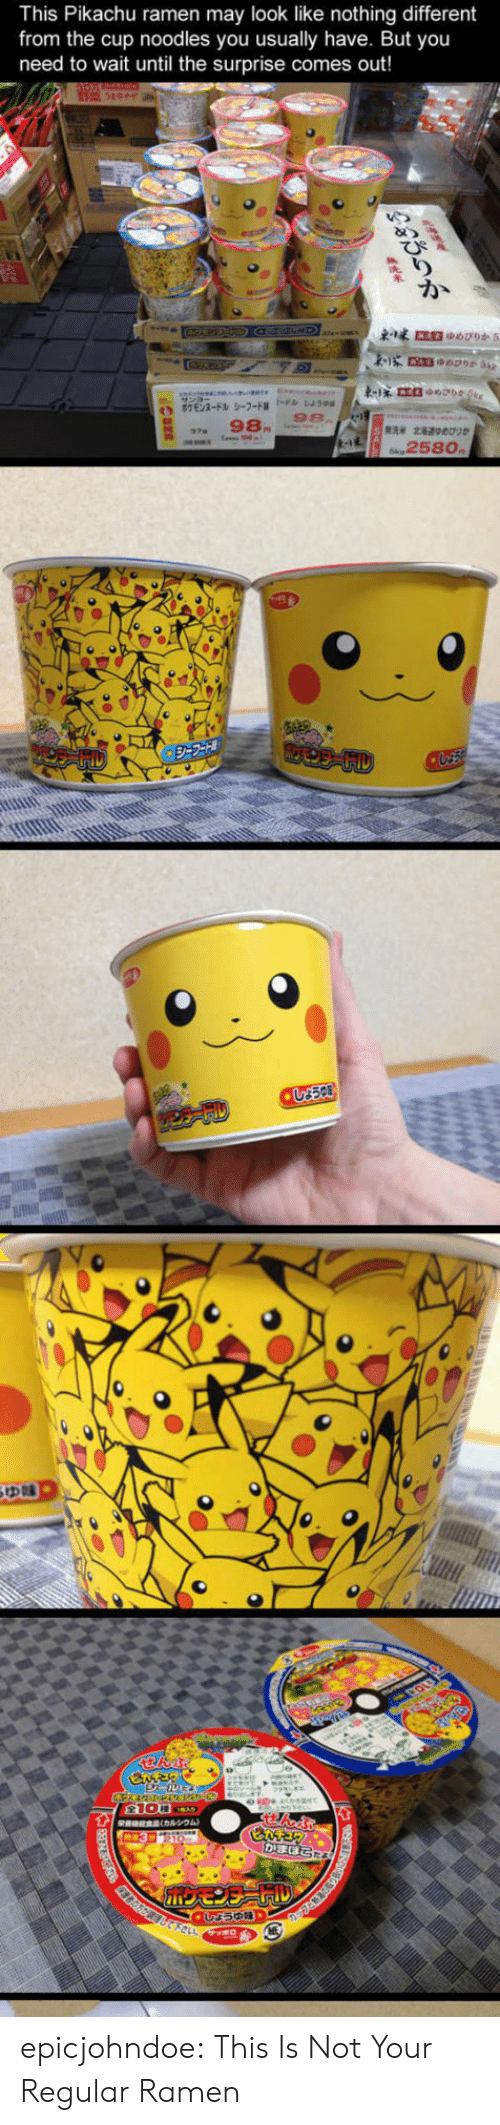 Ramen: This Pikachu ramen may look like nothing different  from the cup noodles you usually have. But you  need to wait until the surprise comes out!  98.  258o epicjohndoe:  This Is Not Your Regular Ramen